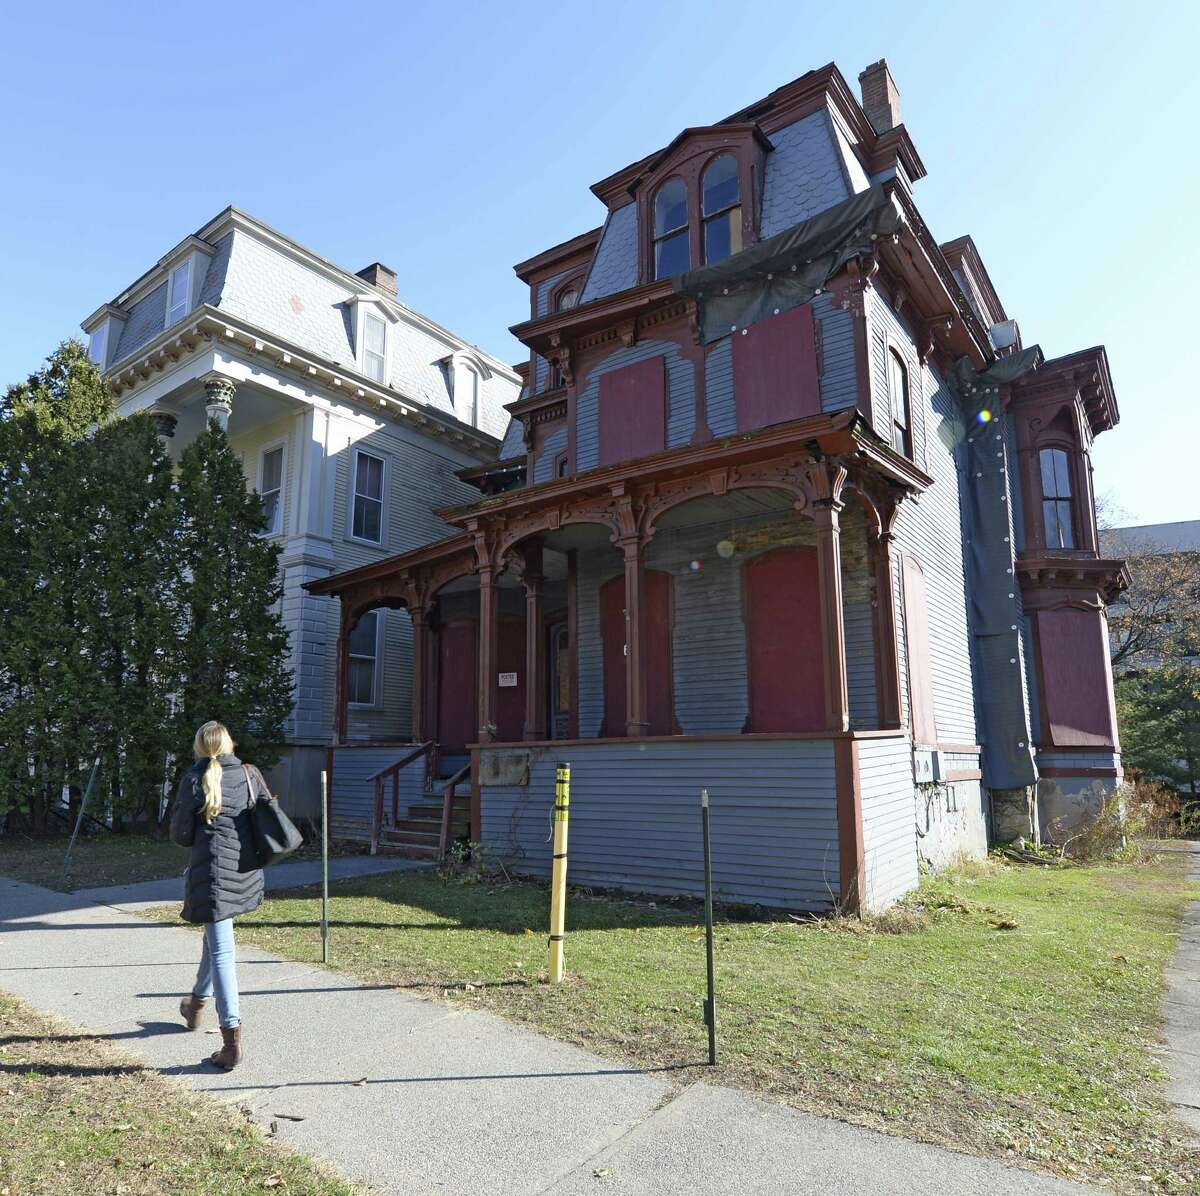 A pedestrian walks past 66 Franklin this morning Nov. 14, 2013 in Saratoga Springs, N.Y. where demolition will commence on that structure. (Skip Dickstein / Times Union)